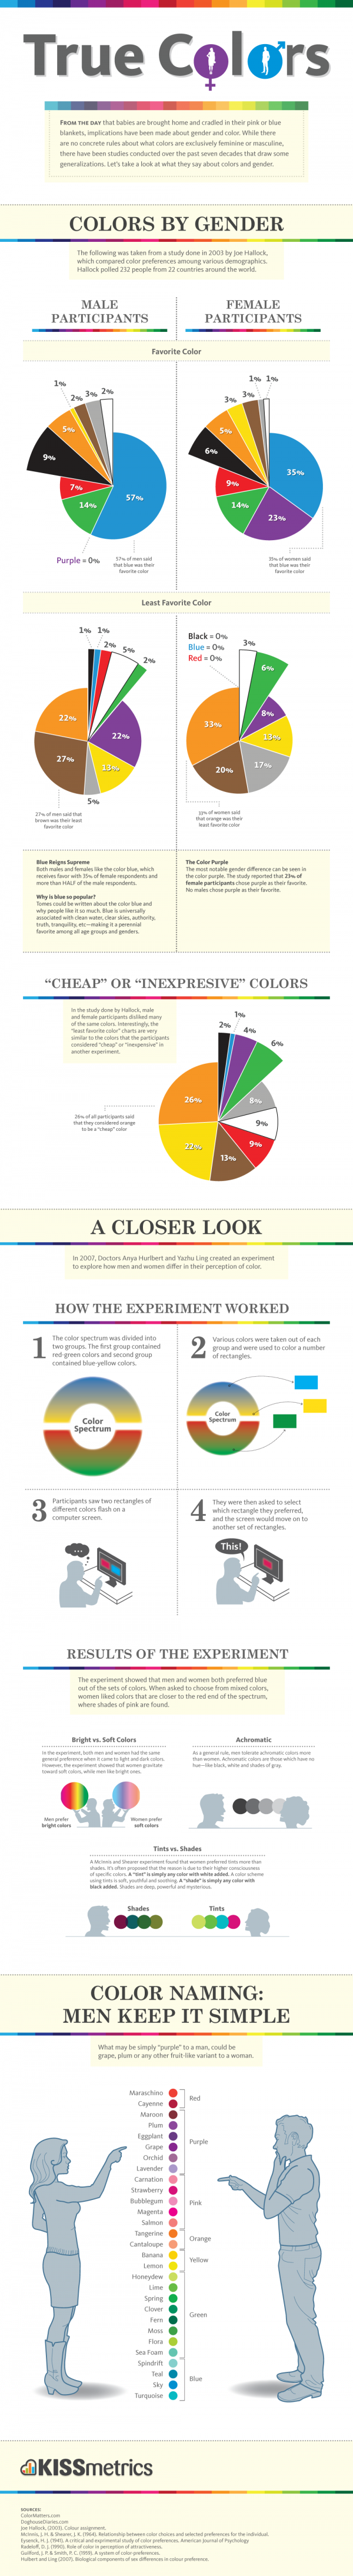 Colors Differences By Gender